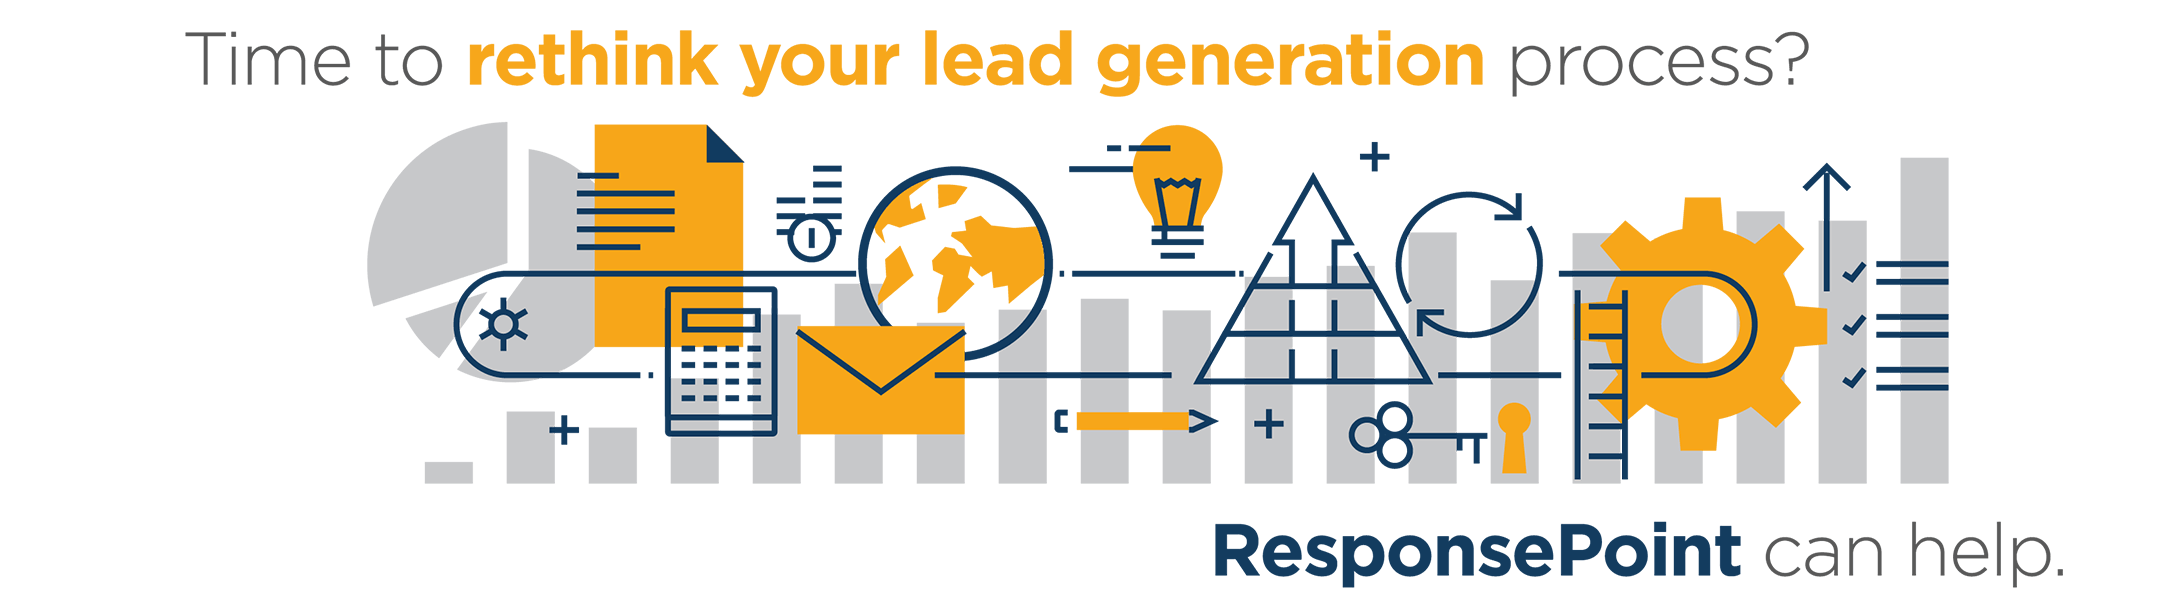 B2B Lead Generation Marketing